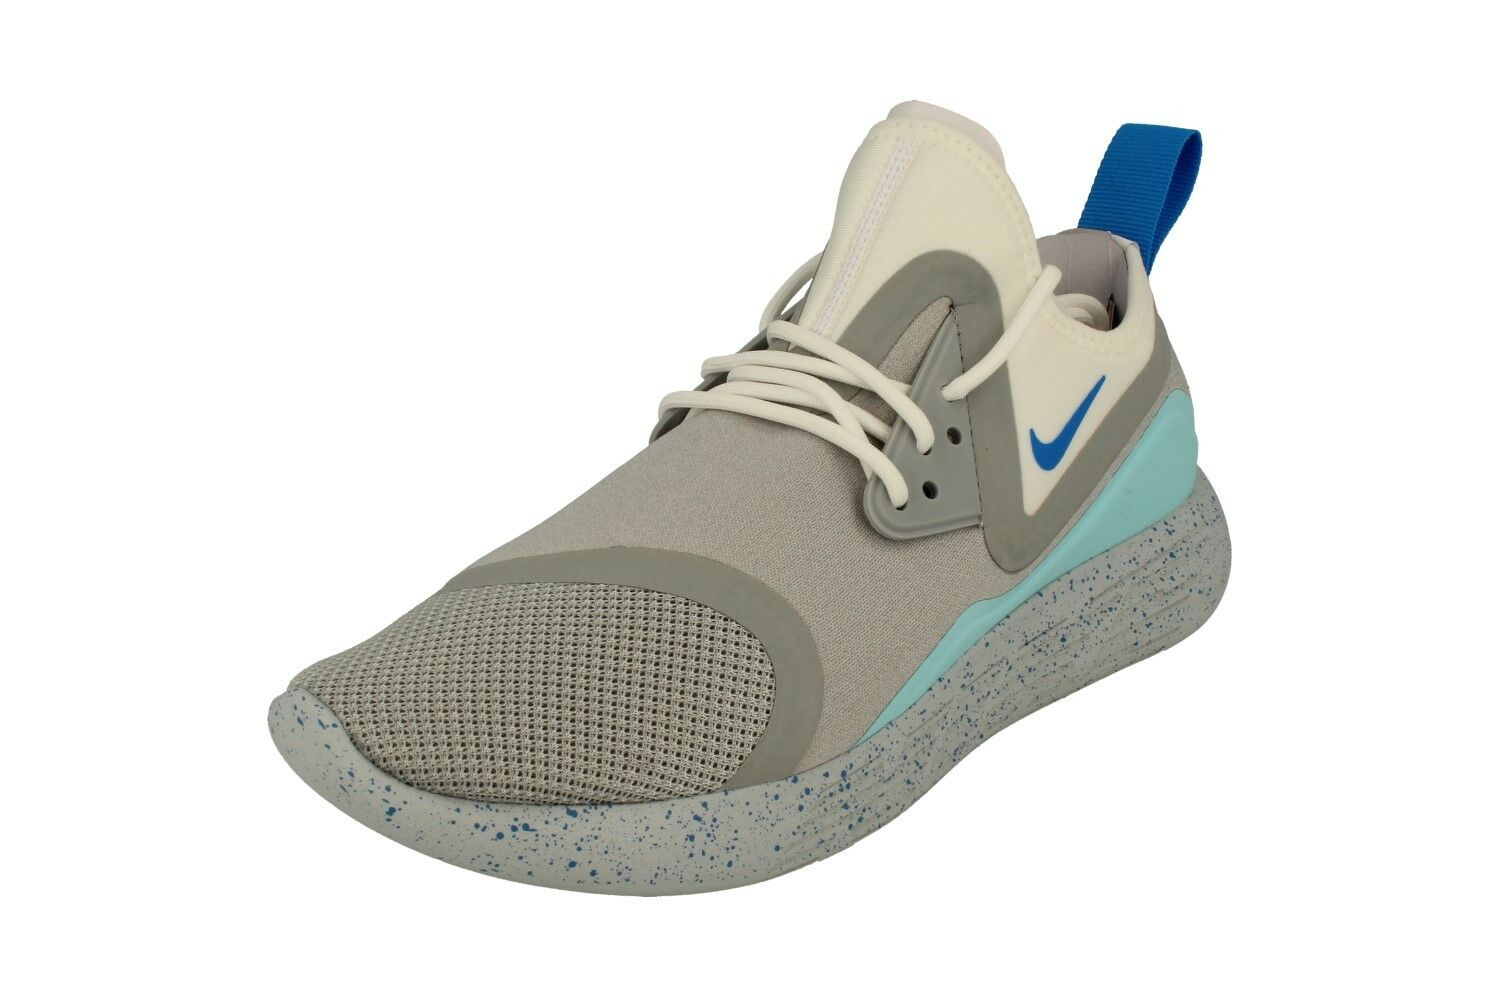 Nike Lunarcharge Bn Mens Running Trainers 933811 Sneakers Shoes 014 Seasonal price cuts, discount benefits